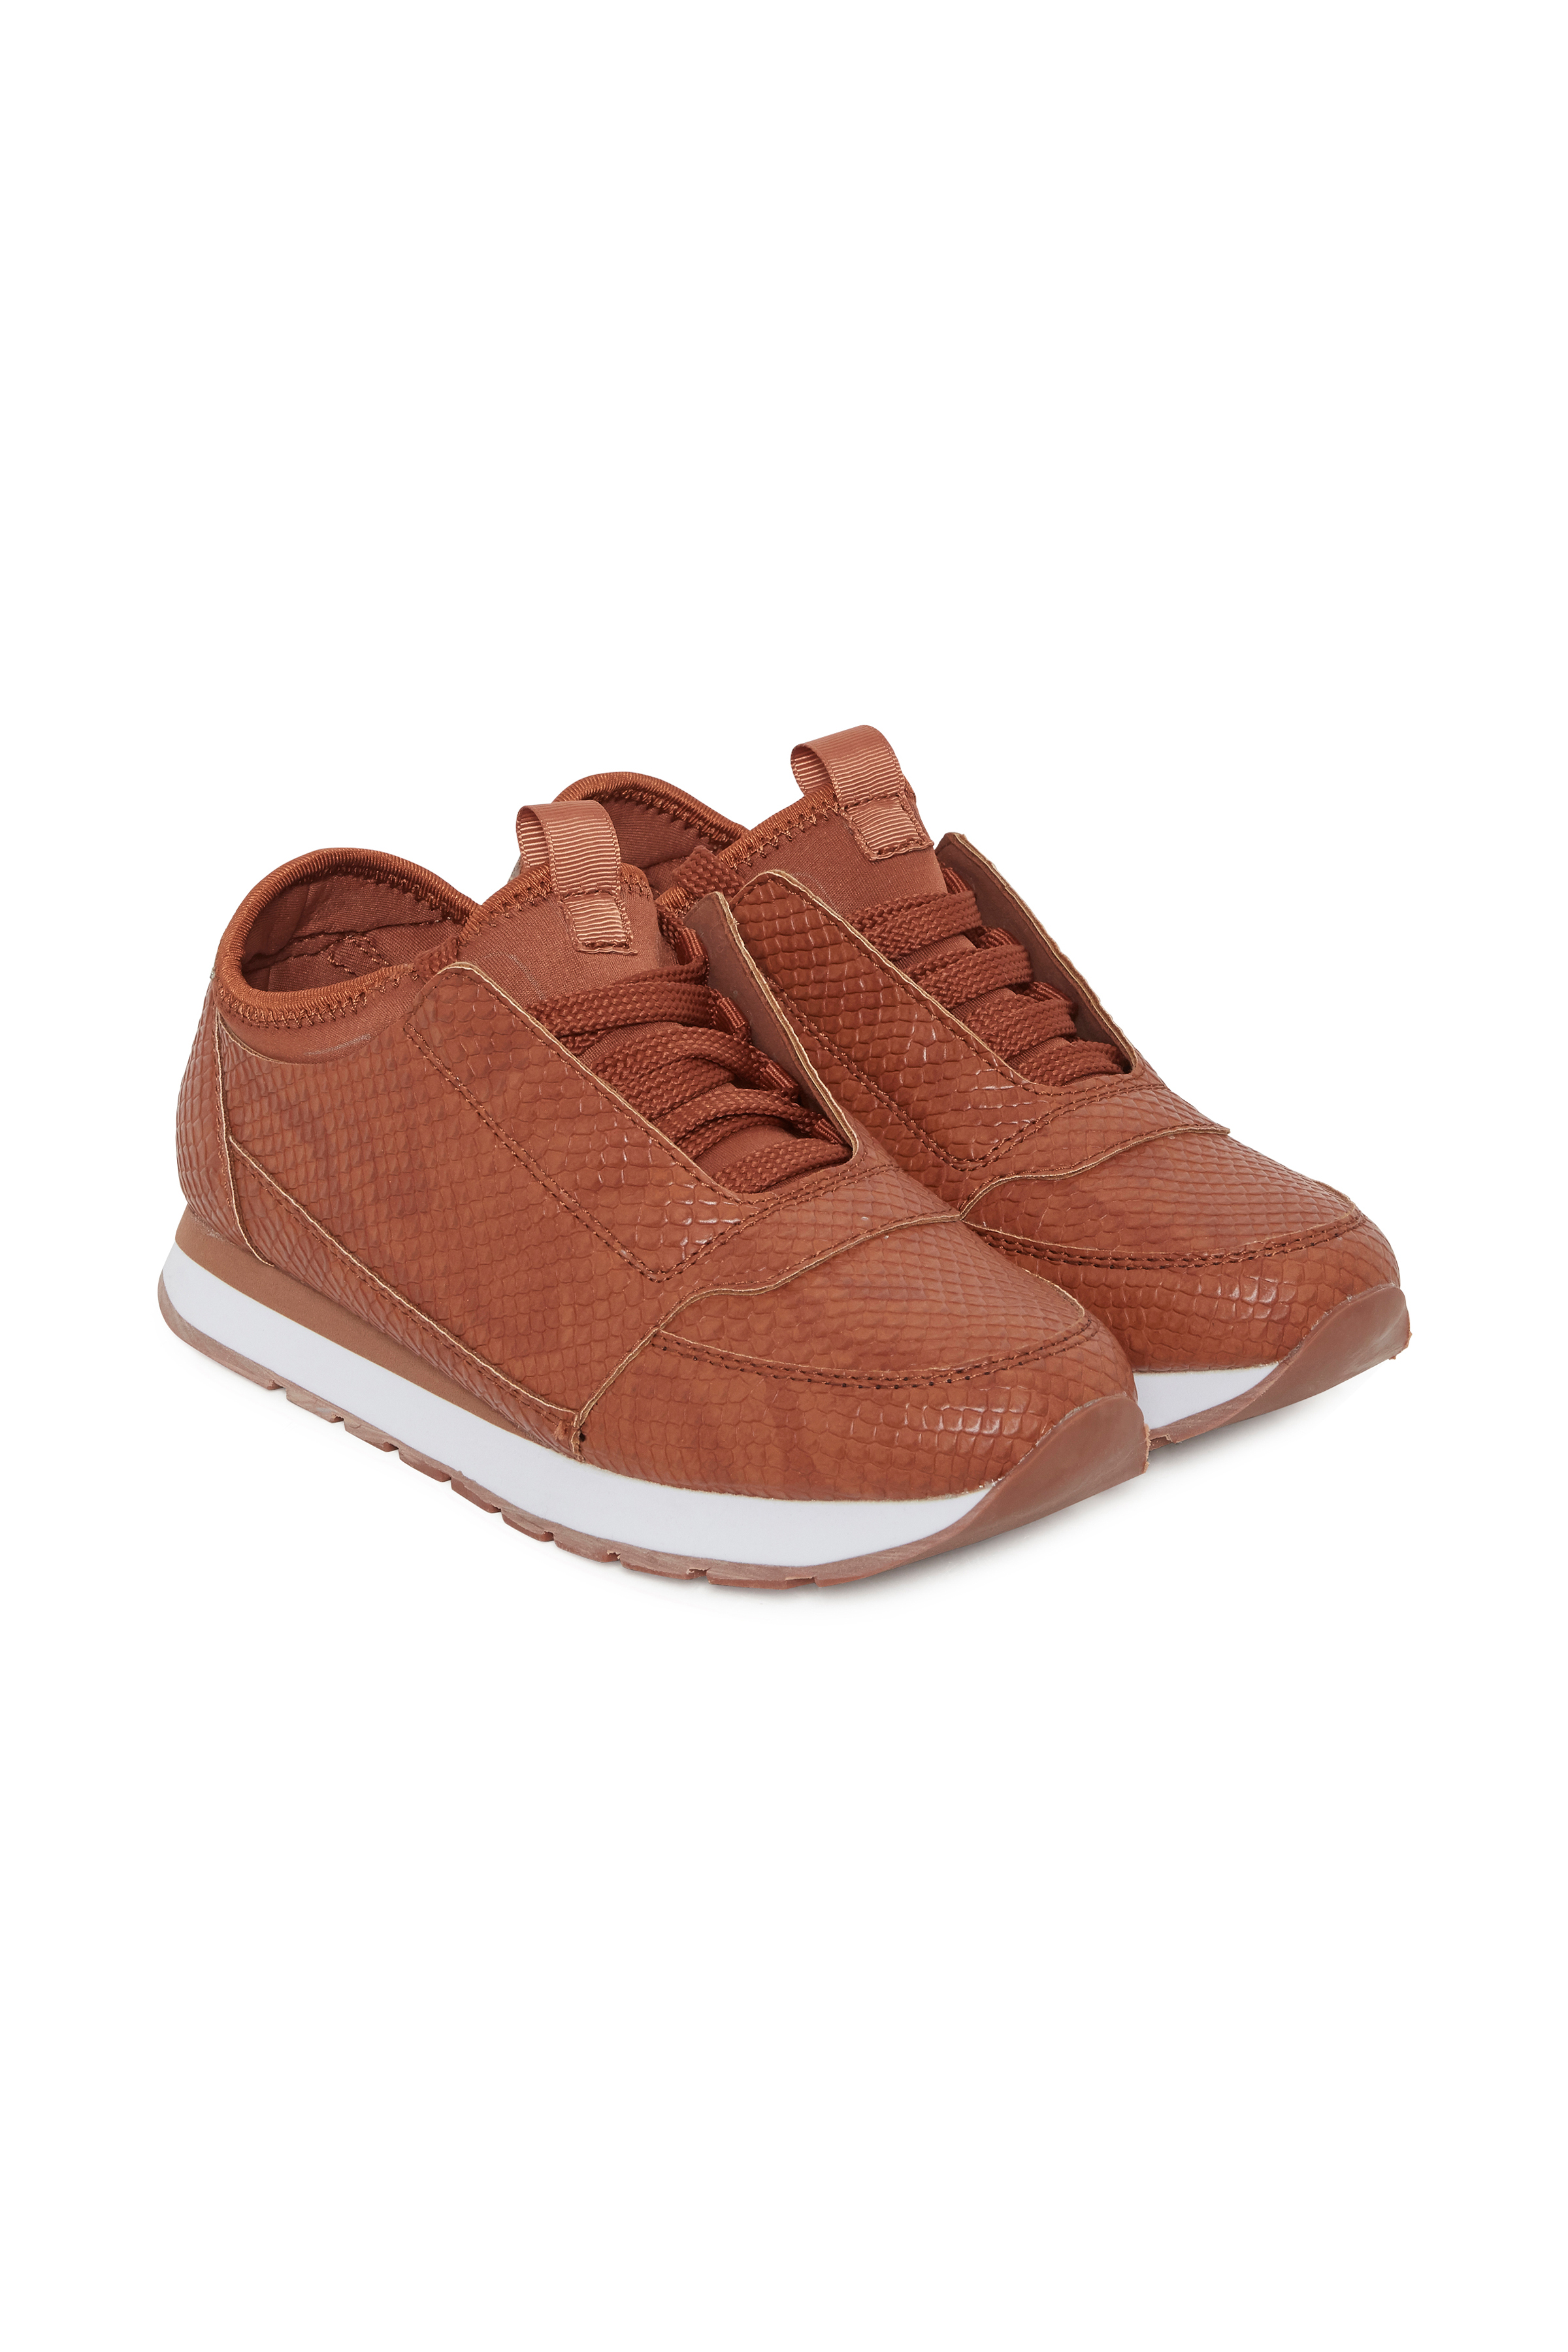 Image of   Ichi - accessories Dame Sneakers - Brun